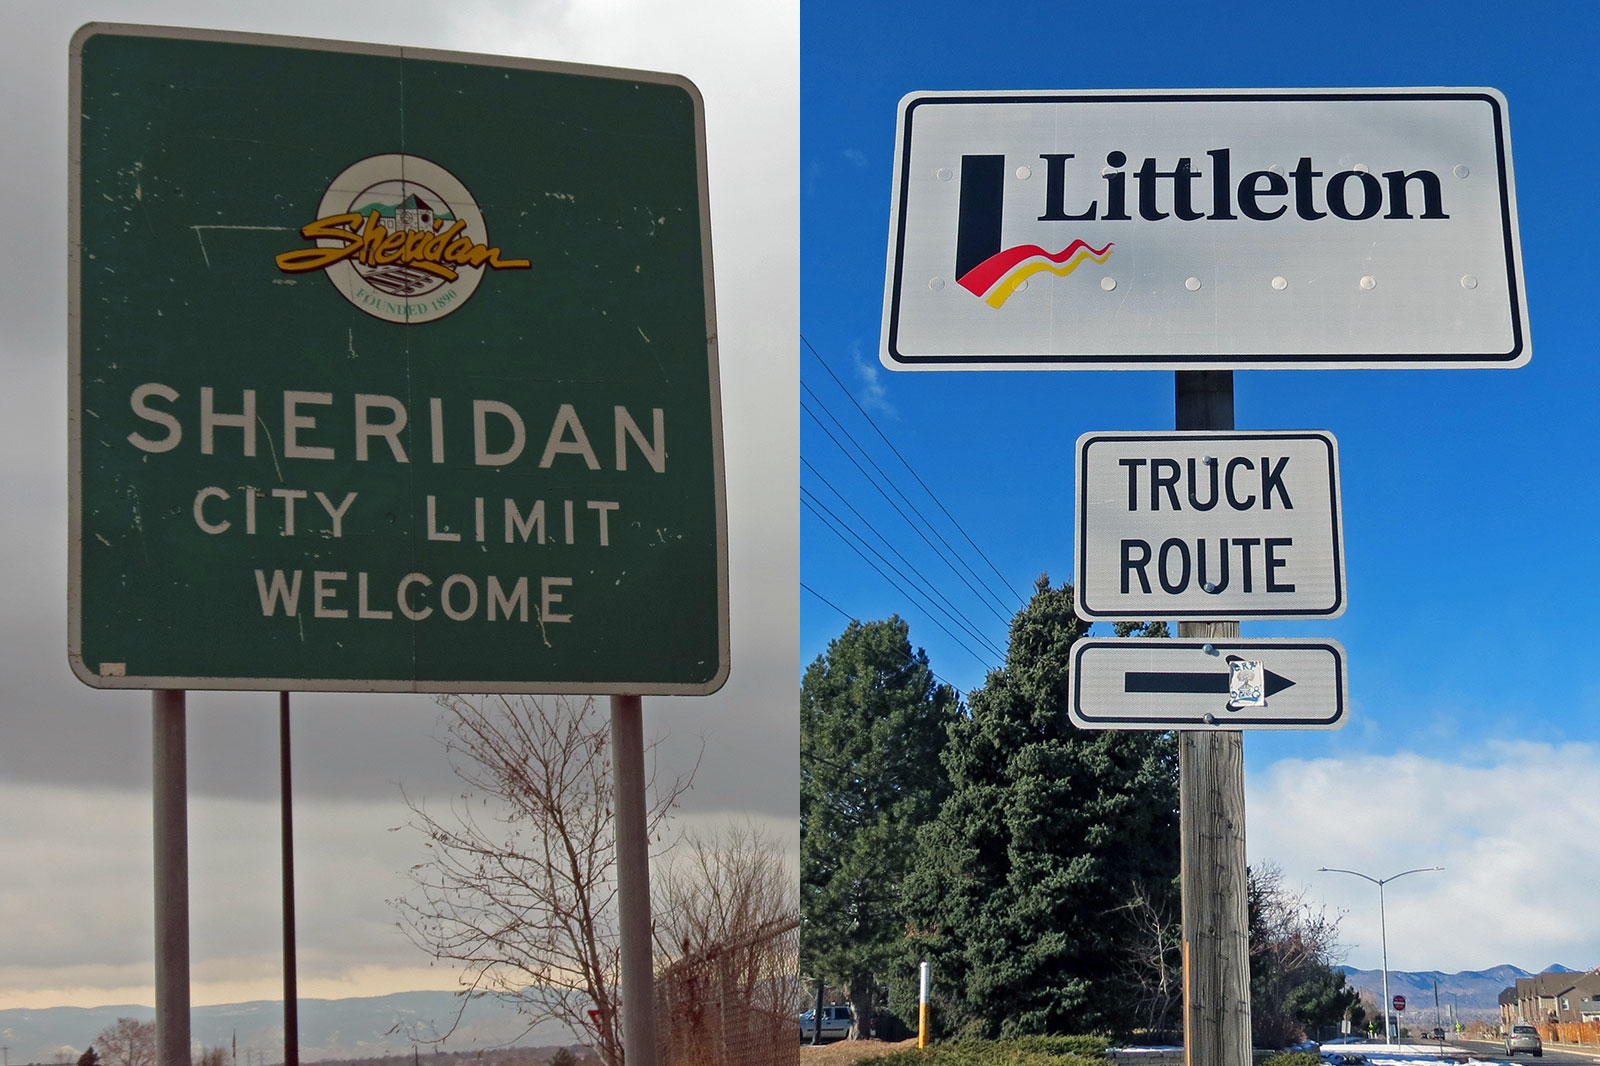 Photo: Two Districts Funding 1 | Sheridan, Littleton Signs - JBrundin